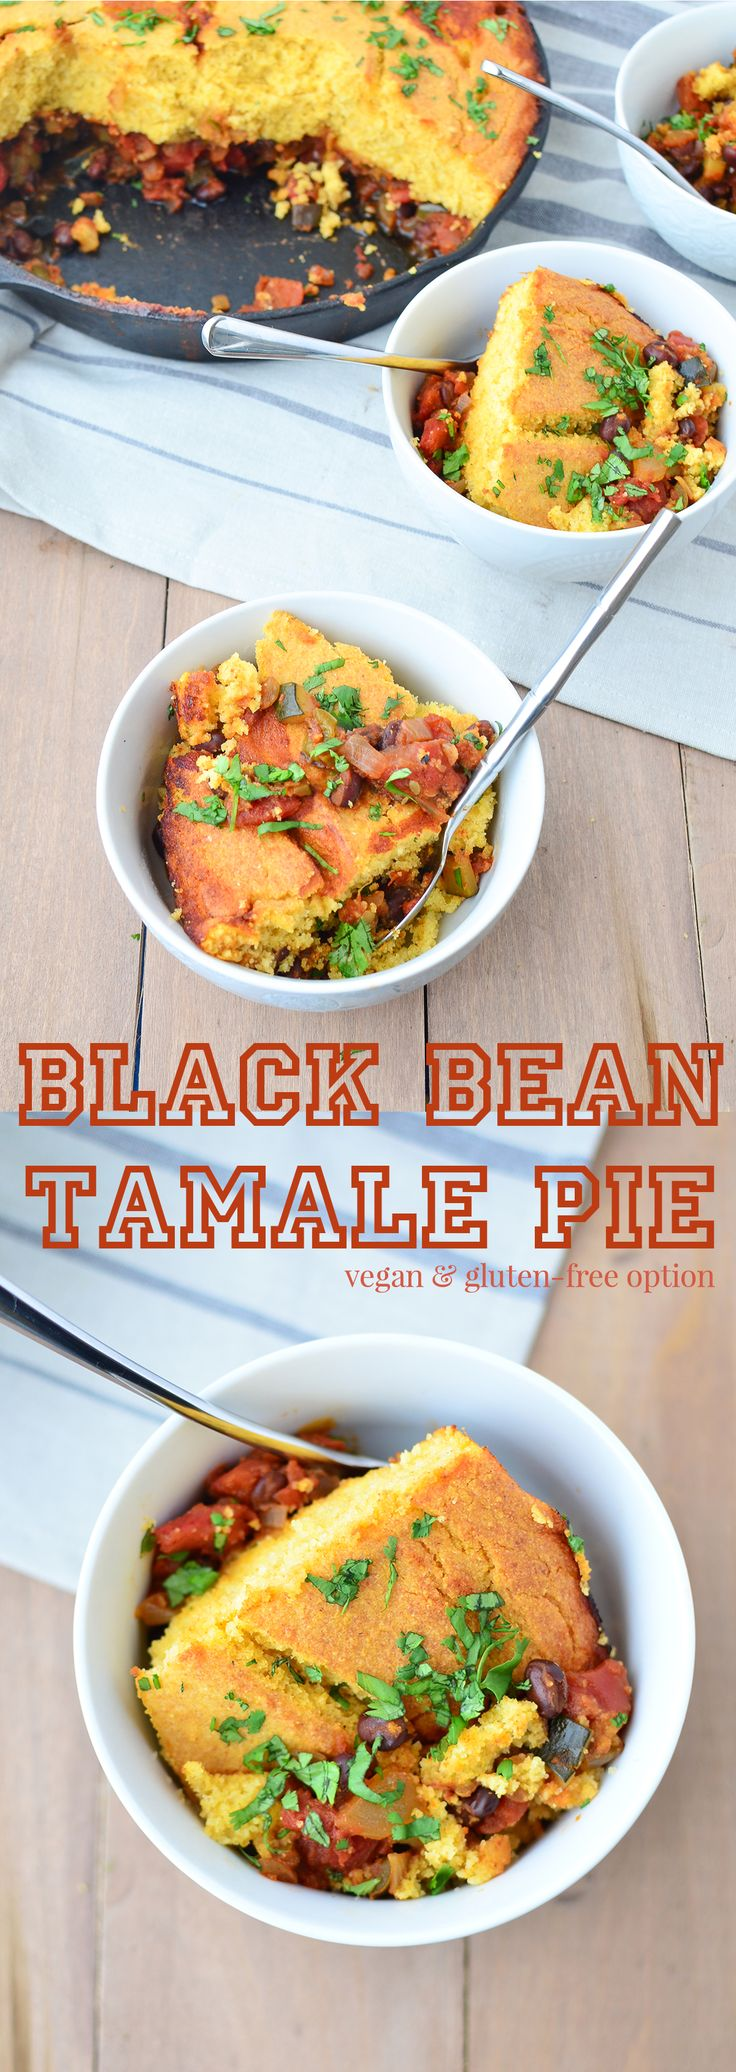 Black Bean Tamale Pie recipe! This weeknight meal is healthy and filling! Black Bean and Zucchini Chili topped with homemade cornbread, baked to perfection! Vegan with Gluten-Free option | www.delishknowledge.com